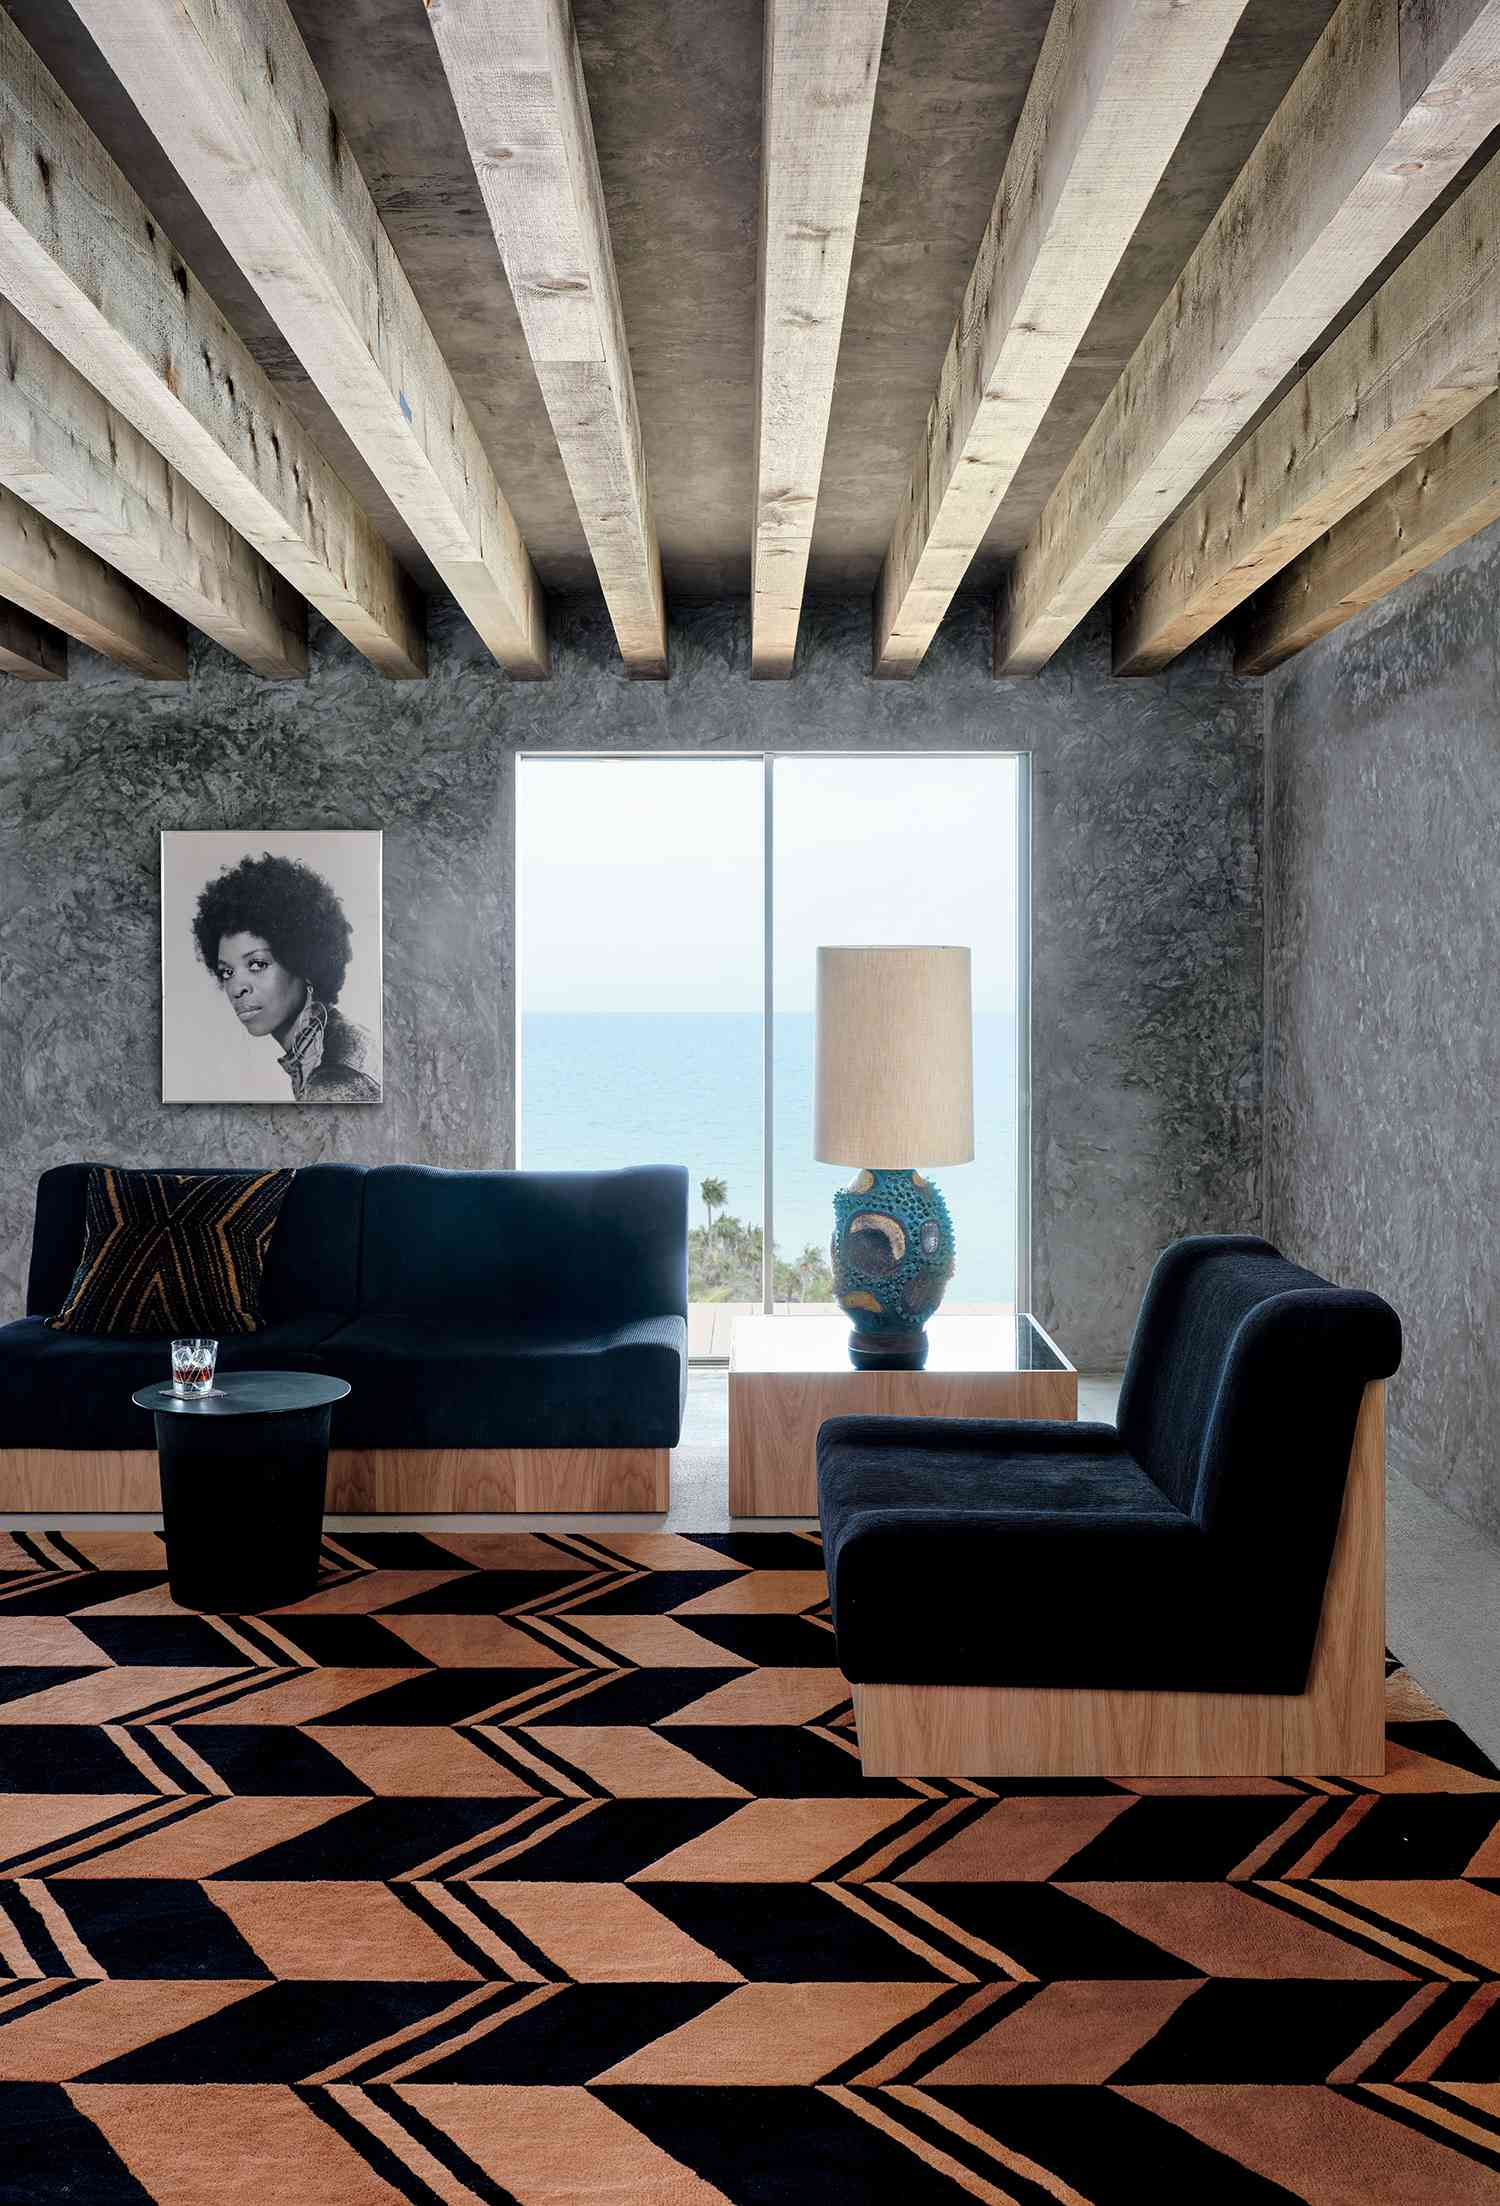 lenny kravitz x cb2 collection - seating arrangement with armless chairs